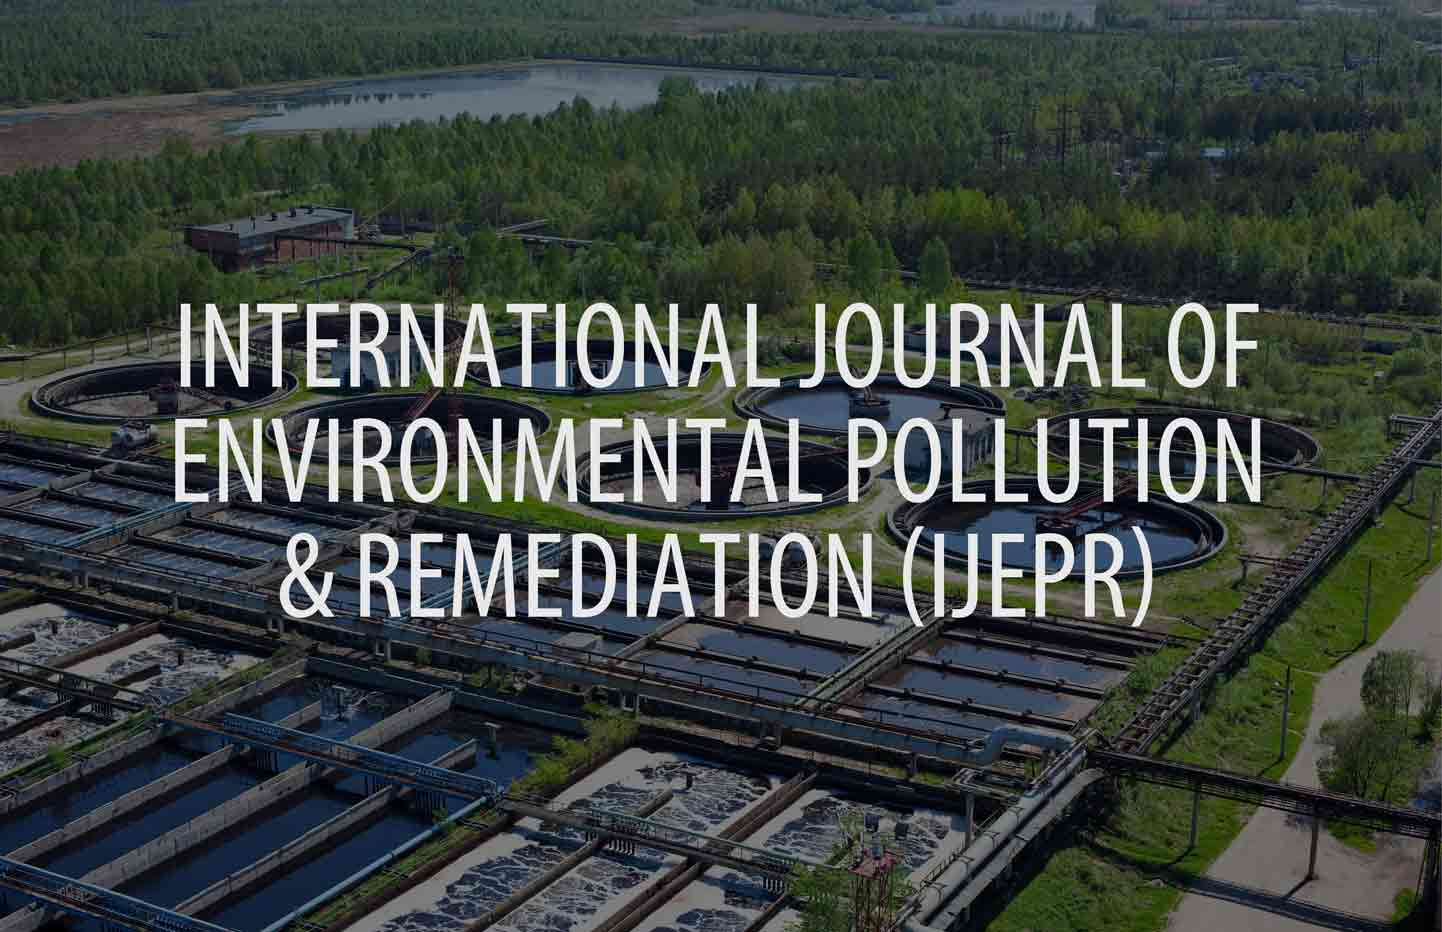 International Journal of Environmental Pollution and Remediation (IJEPR)